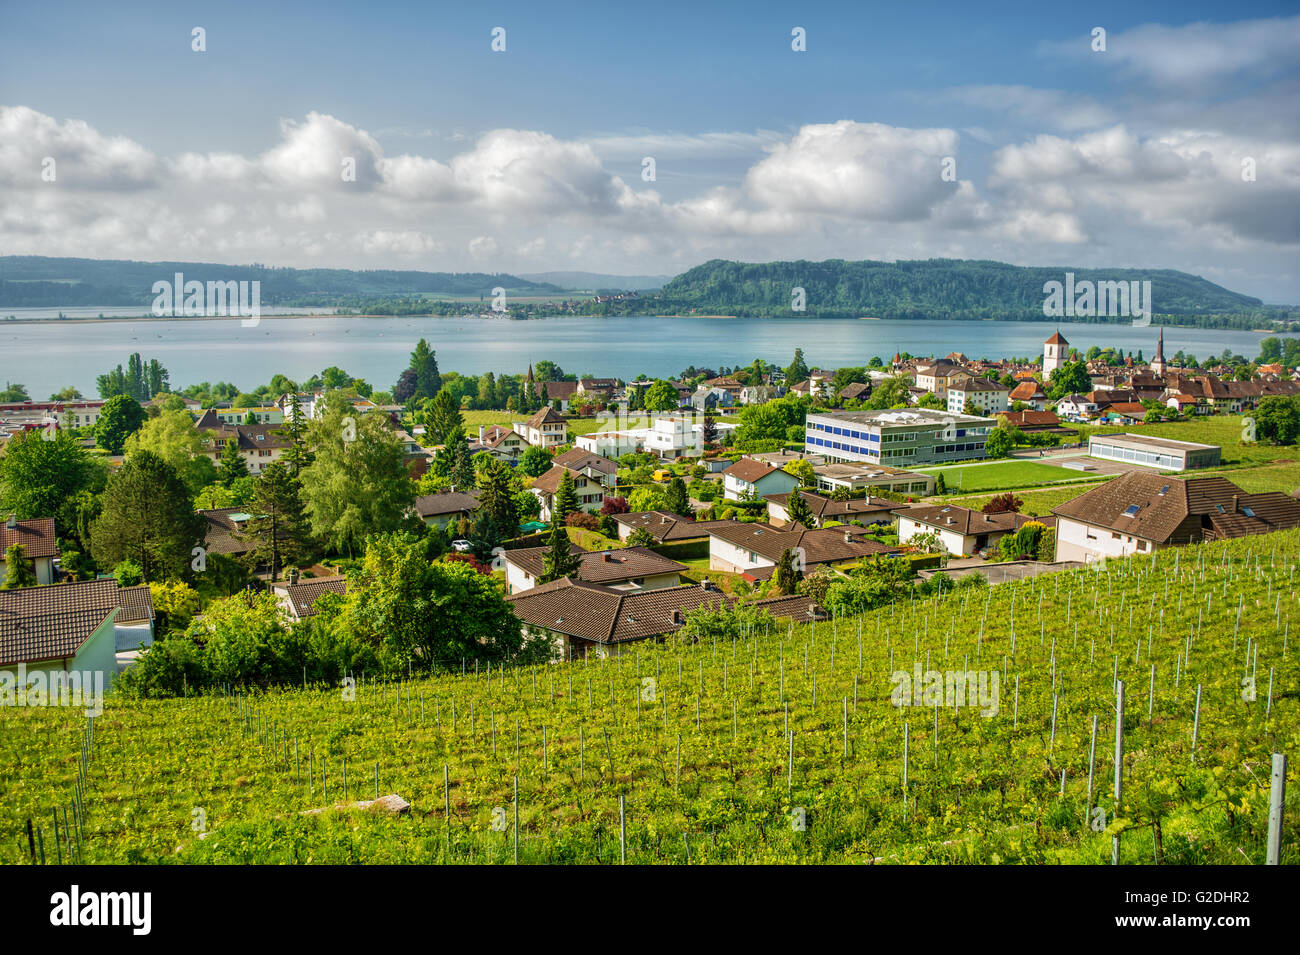 May 2016, the village La Neuveville (Switzerland) in front of the Lake Biel, HDR-technique - Stock Image